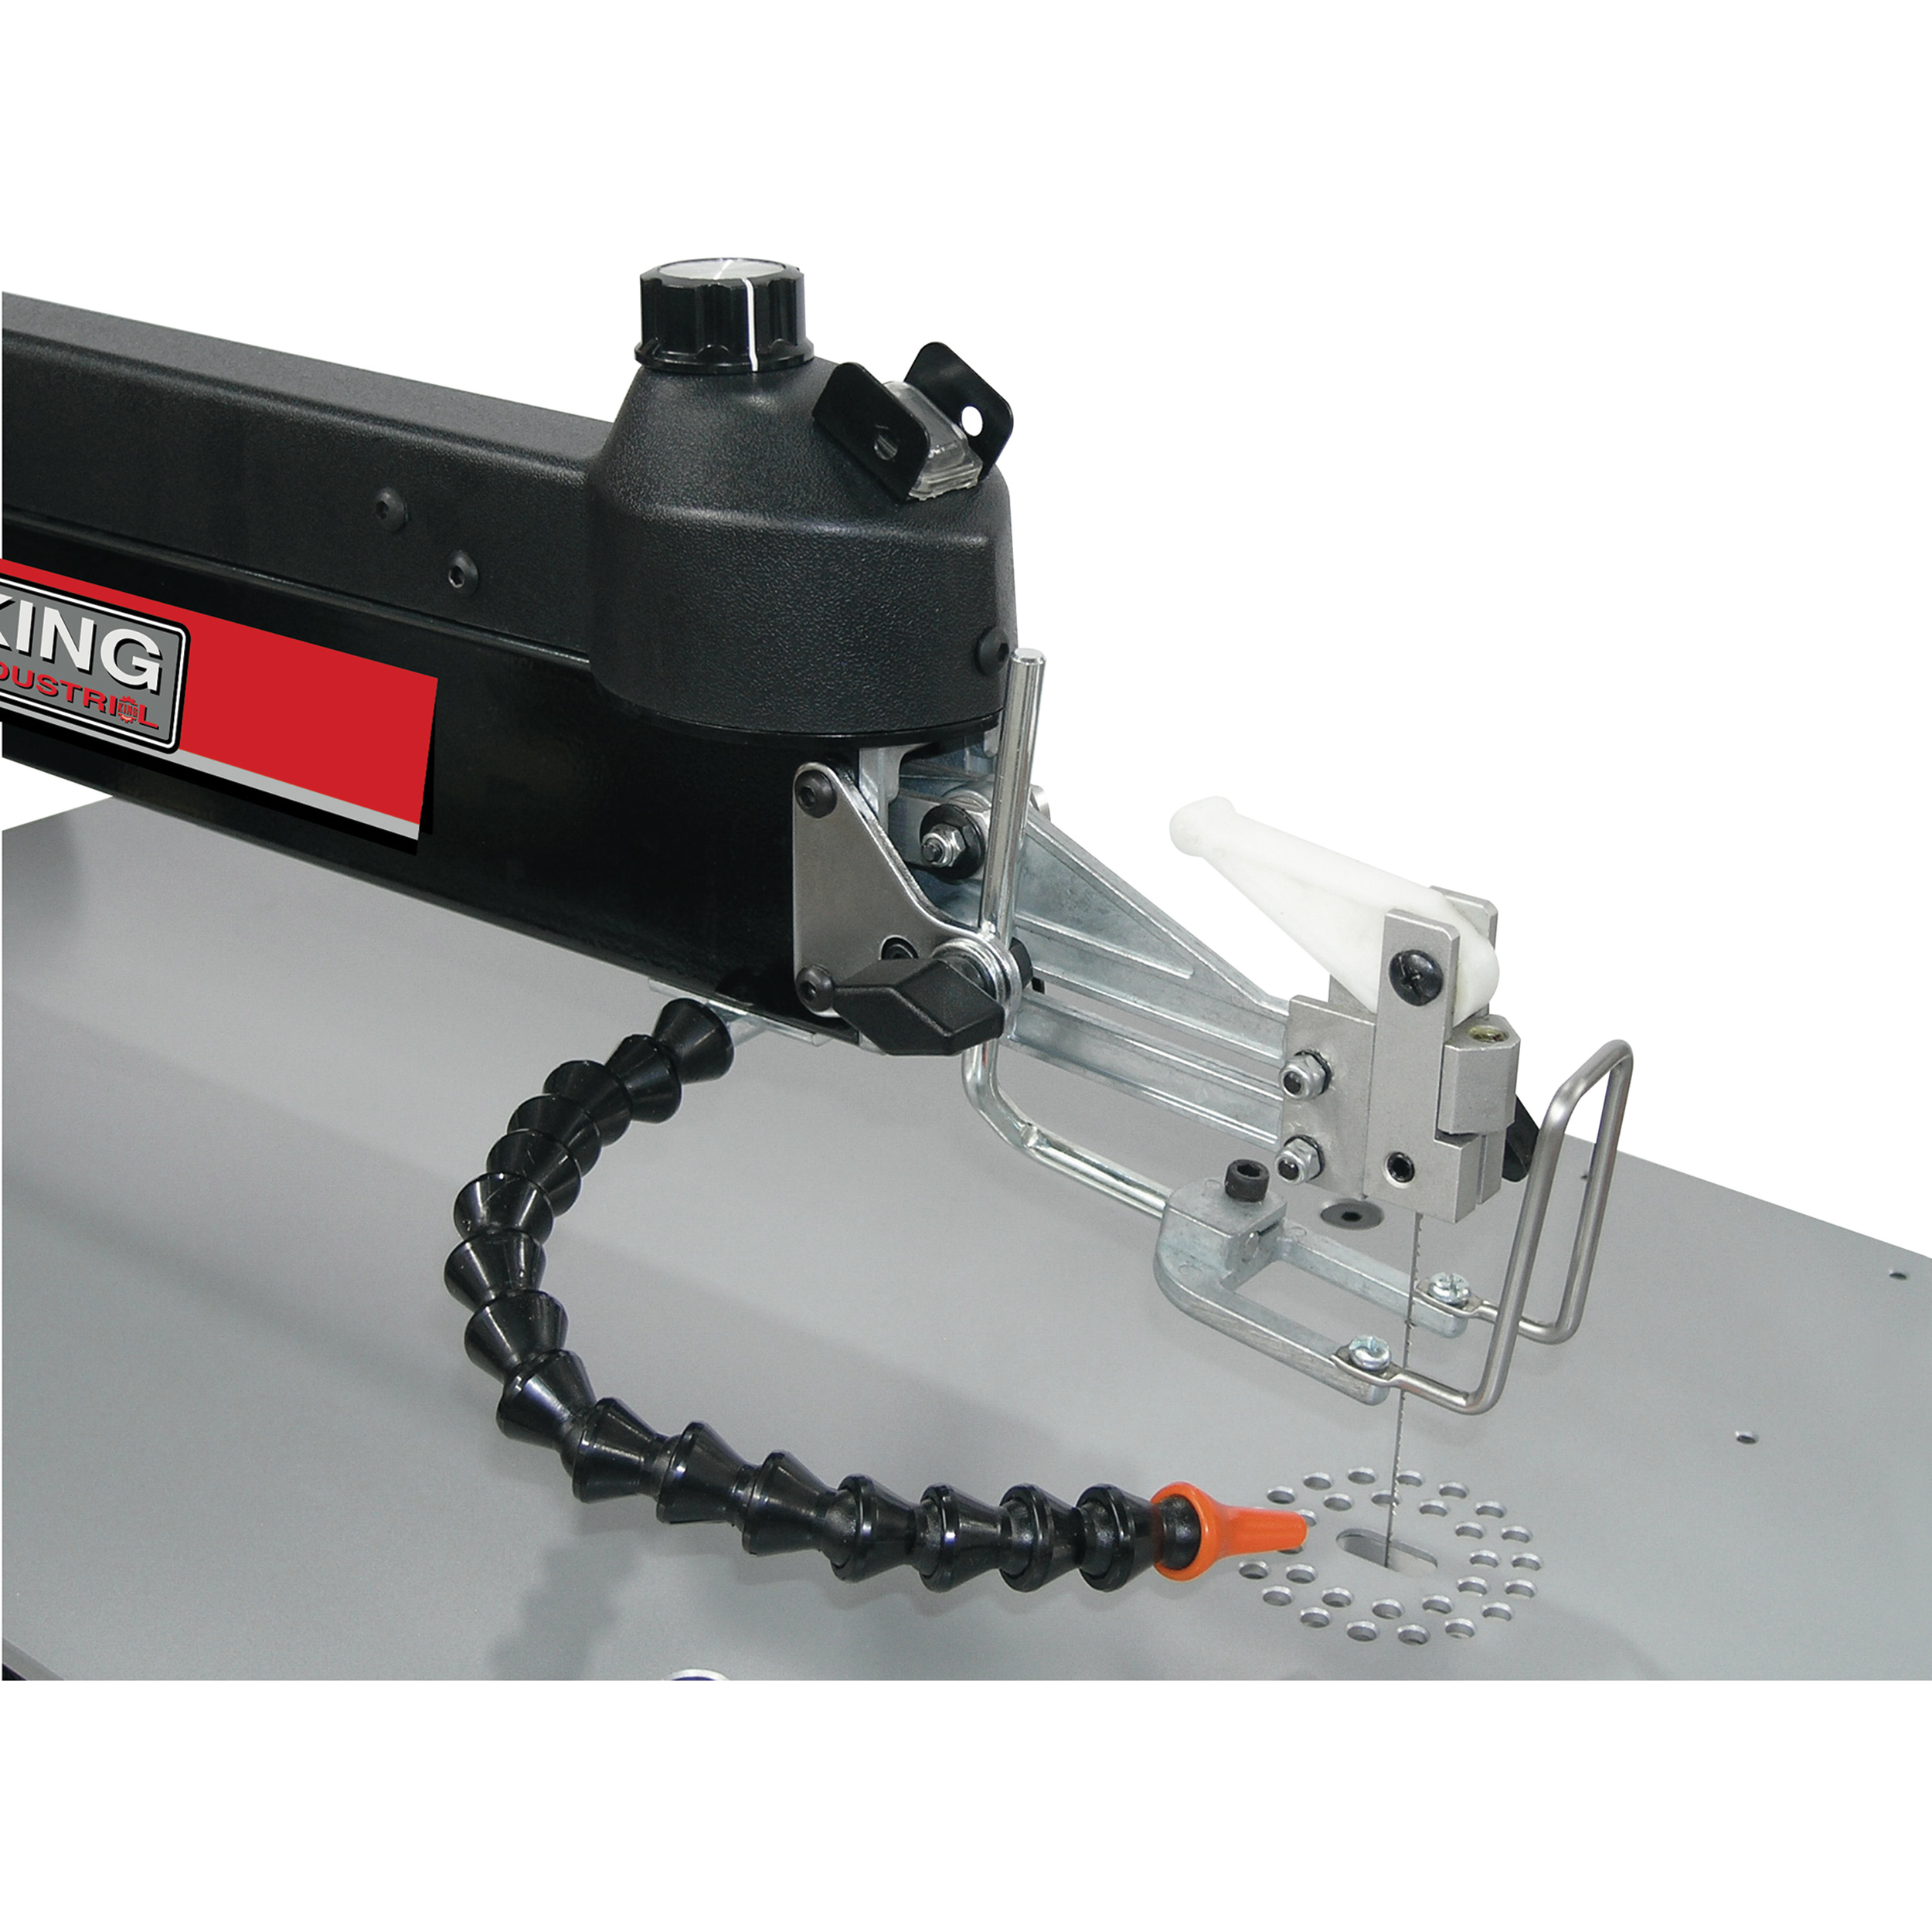 King Industrial 16 Inch Scroll Saw by King Global Sourcing Inc